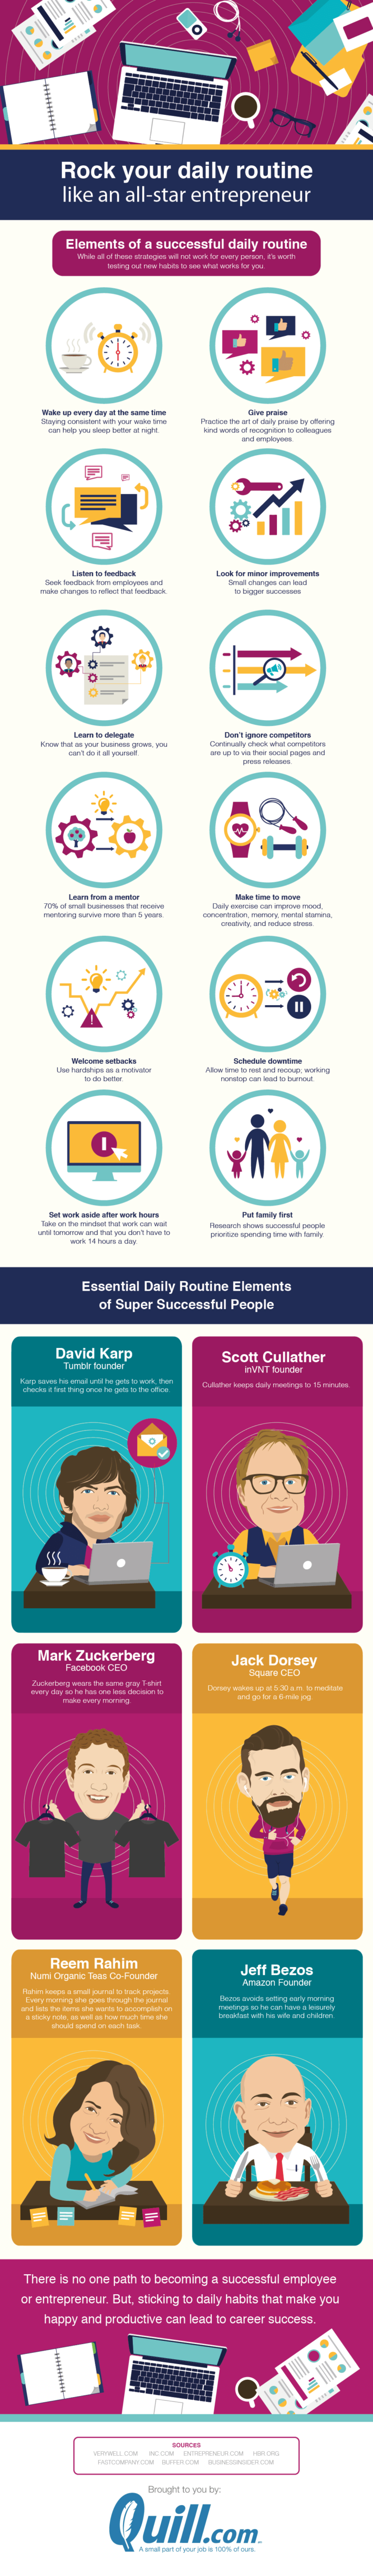 Rock your daily routine like an all-star entrepreneur